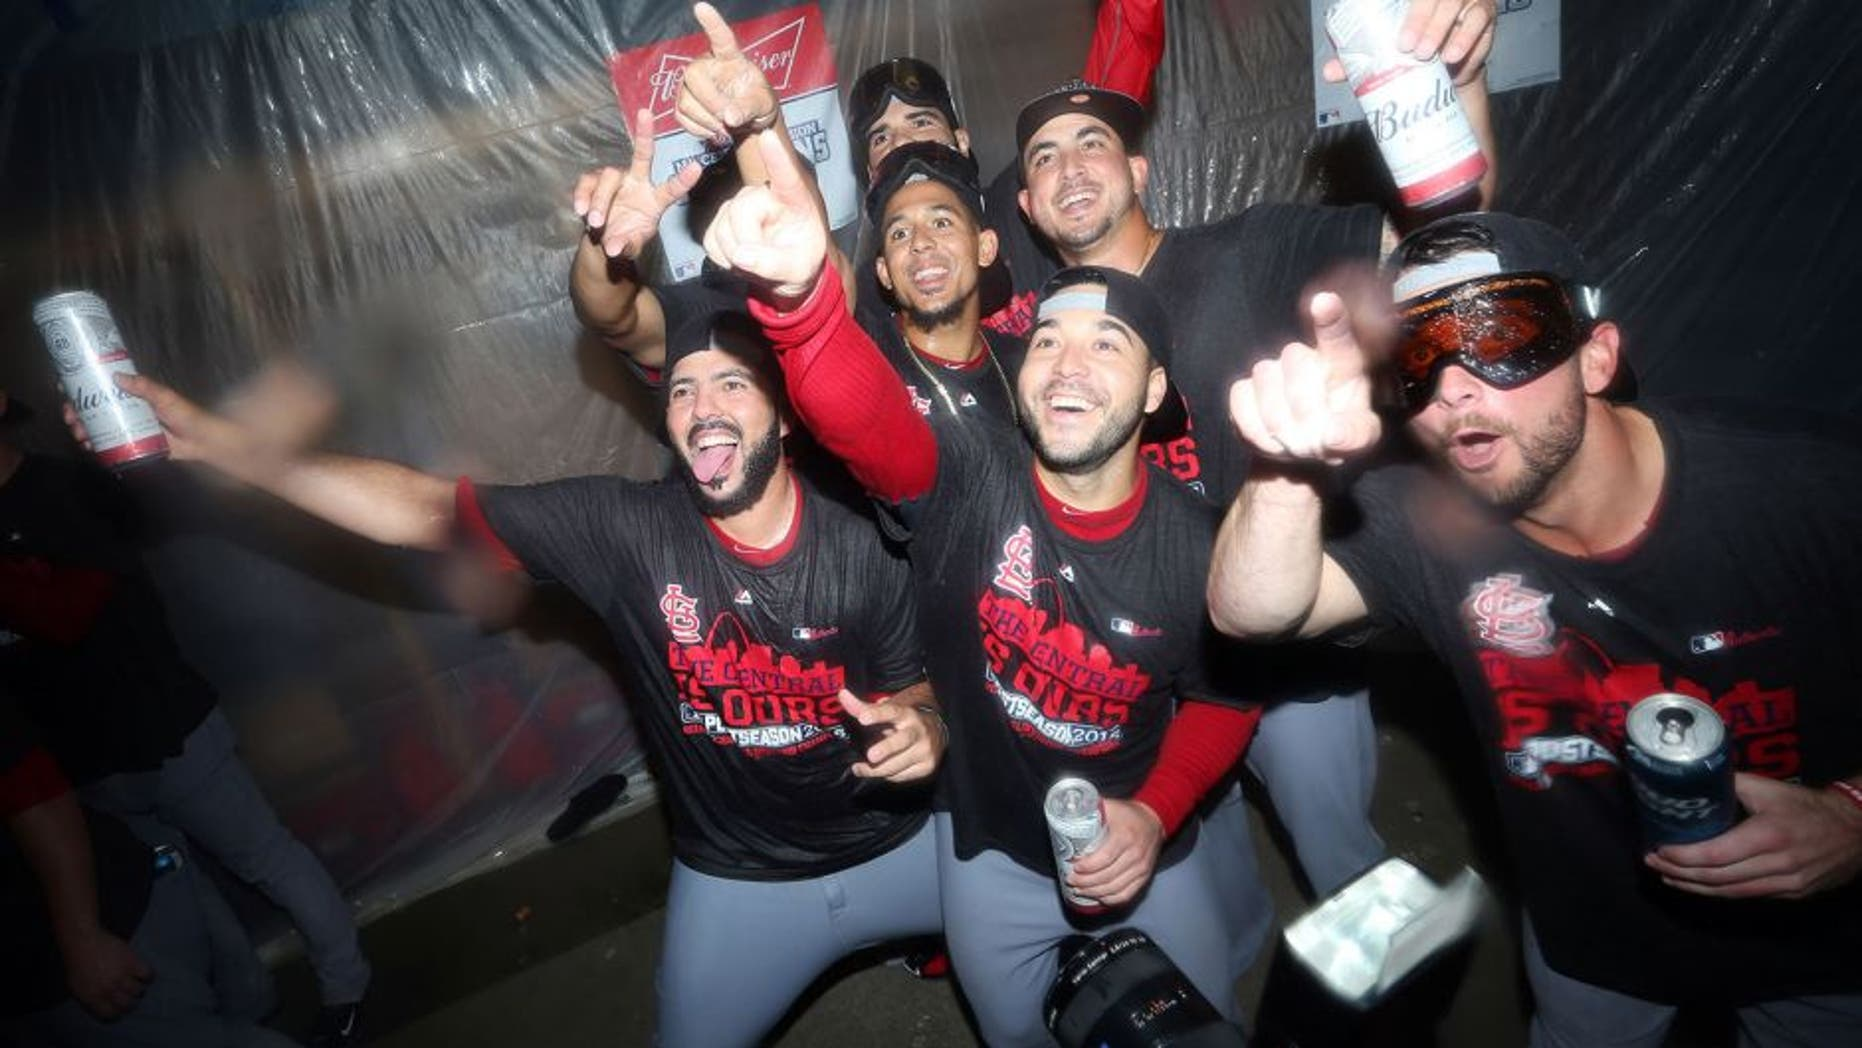 Sep 30, 2015; Pittsburgh, PA, USA; St. Louis Cardinals players pose for a photo after defeating the Pittsburgh Pirates to clinch the National League Central Division Championship at PNC Park. The Cardinals won 11-1. Mandatory Credit: Charles LeClaire-USA TODAY Sports